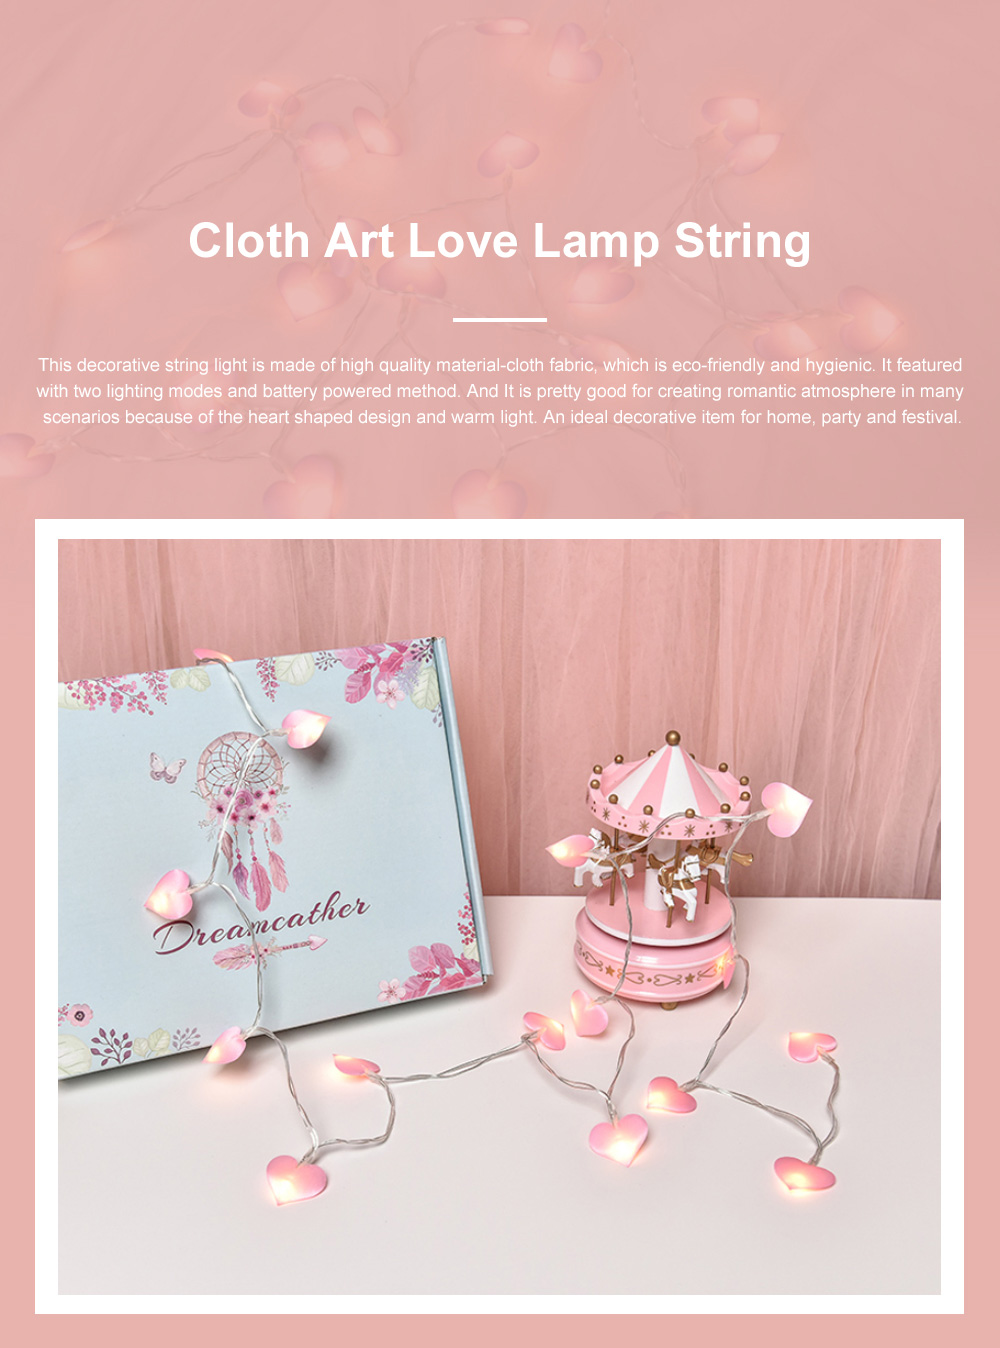 3m 5m 10m Cloth Art Love Lamp String Heart Shape Battery Powered LED String Twinkling Lights for Home Party Festival Wedding Xmas Decoration 0